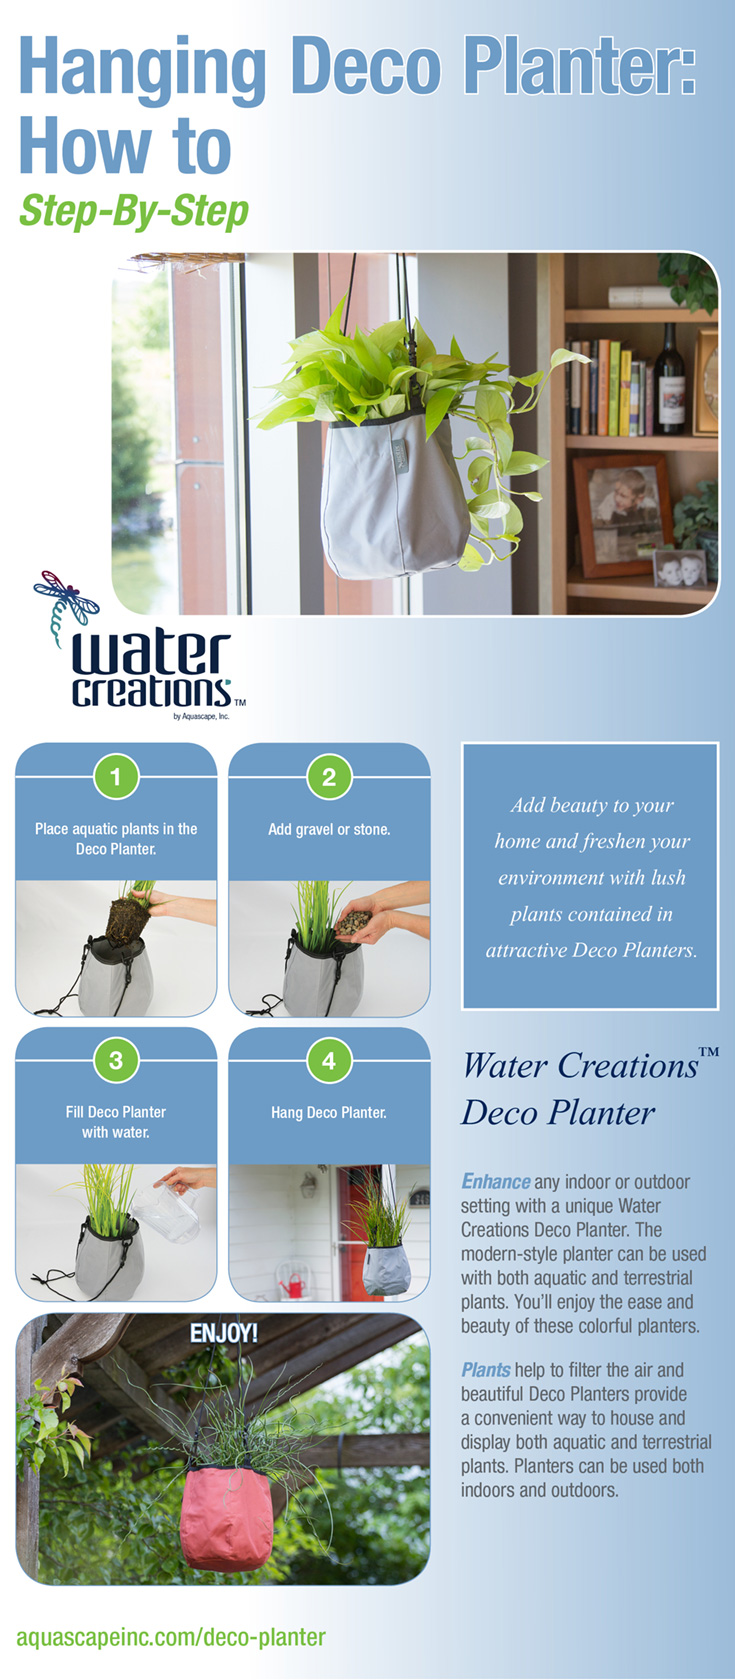 Water Creations Hanging Deco Planter INFOGRAPHIC